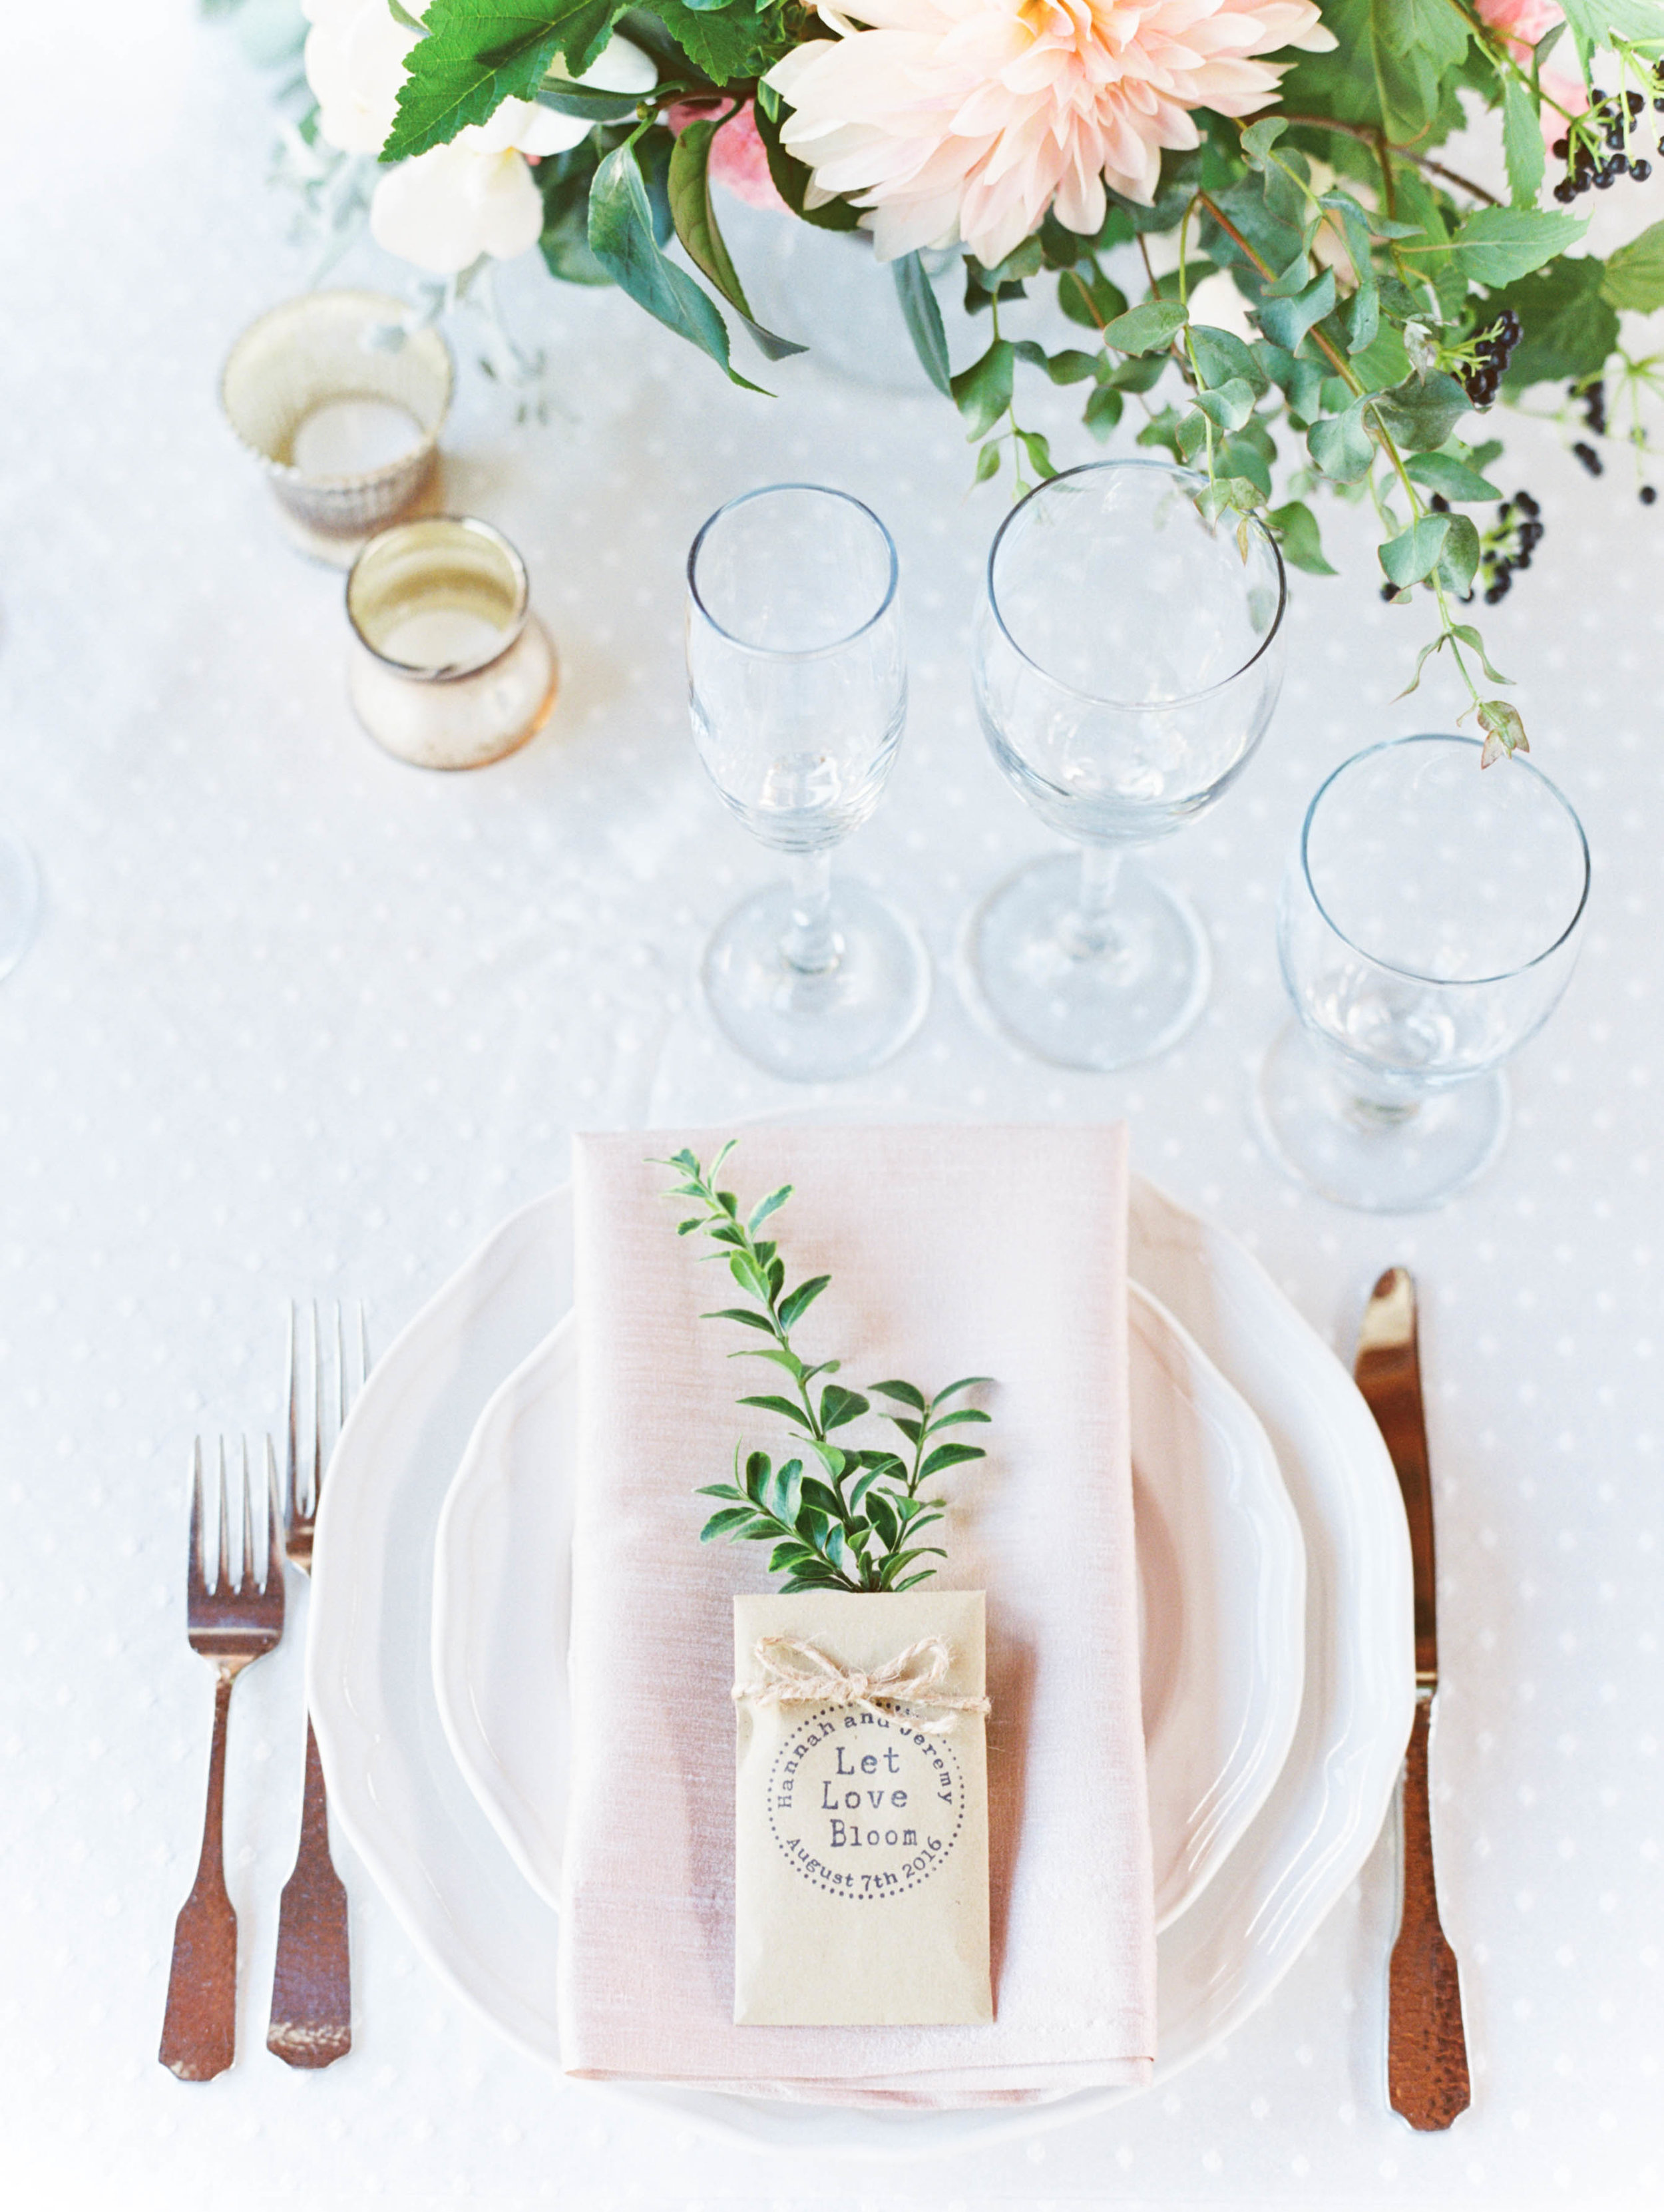 table setting for pastel wedding at mt hood organic farms by foraged floral.jpg